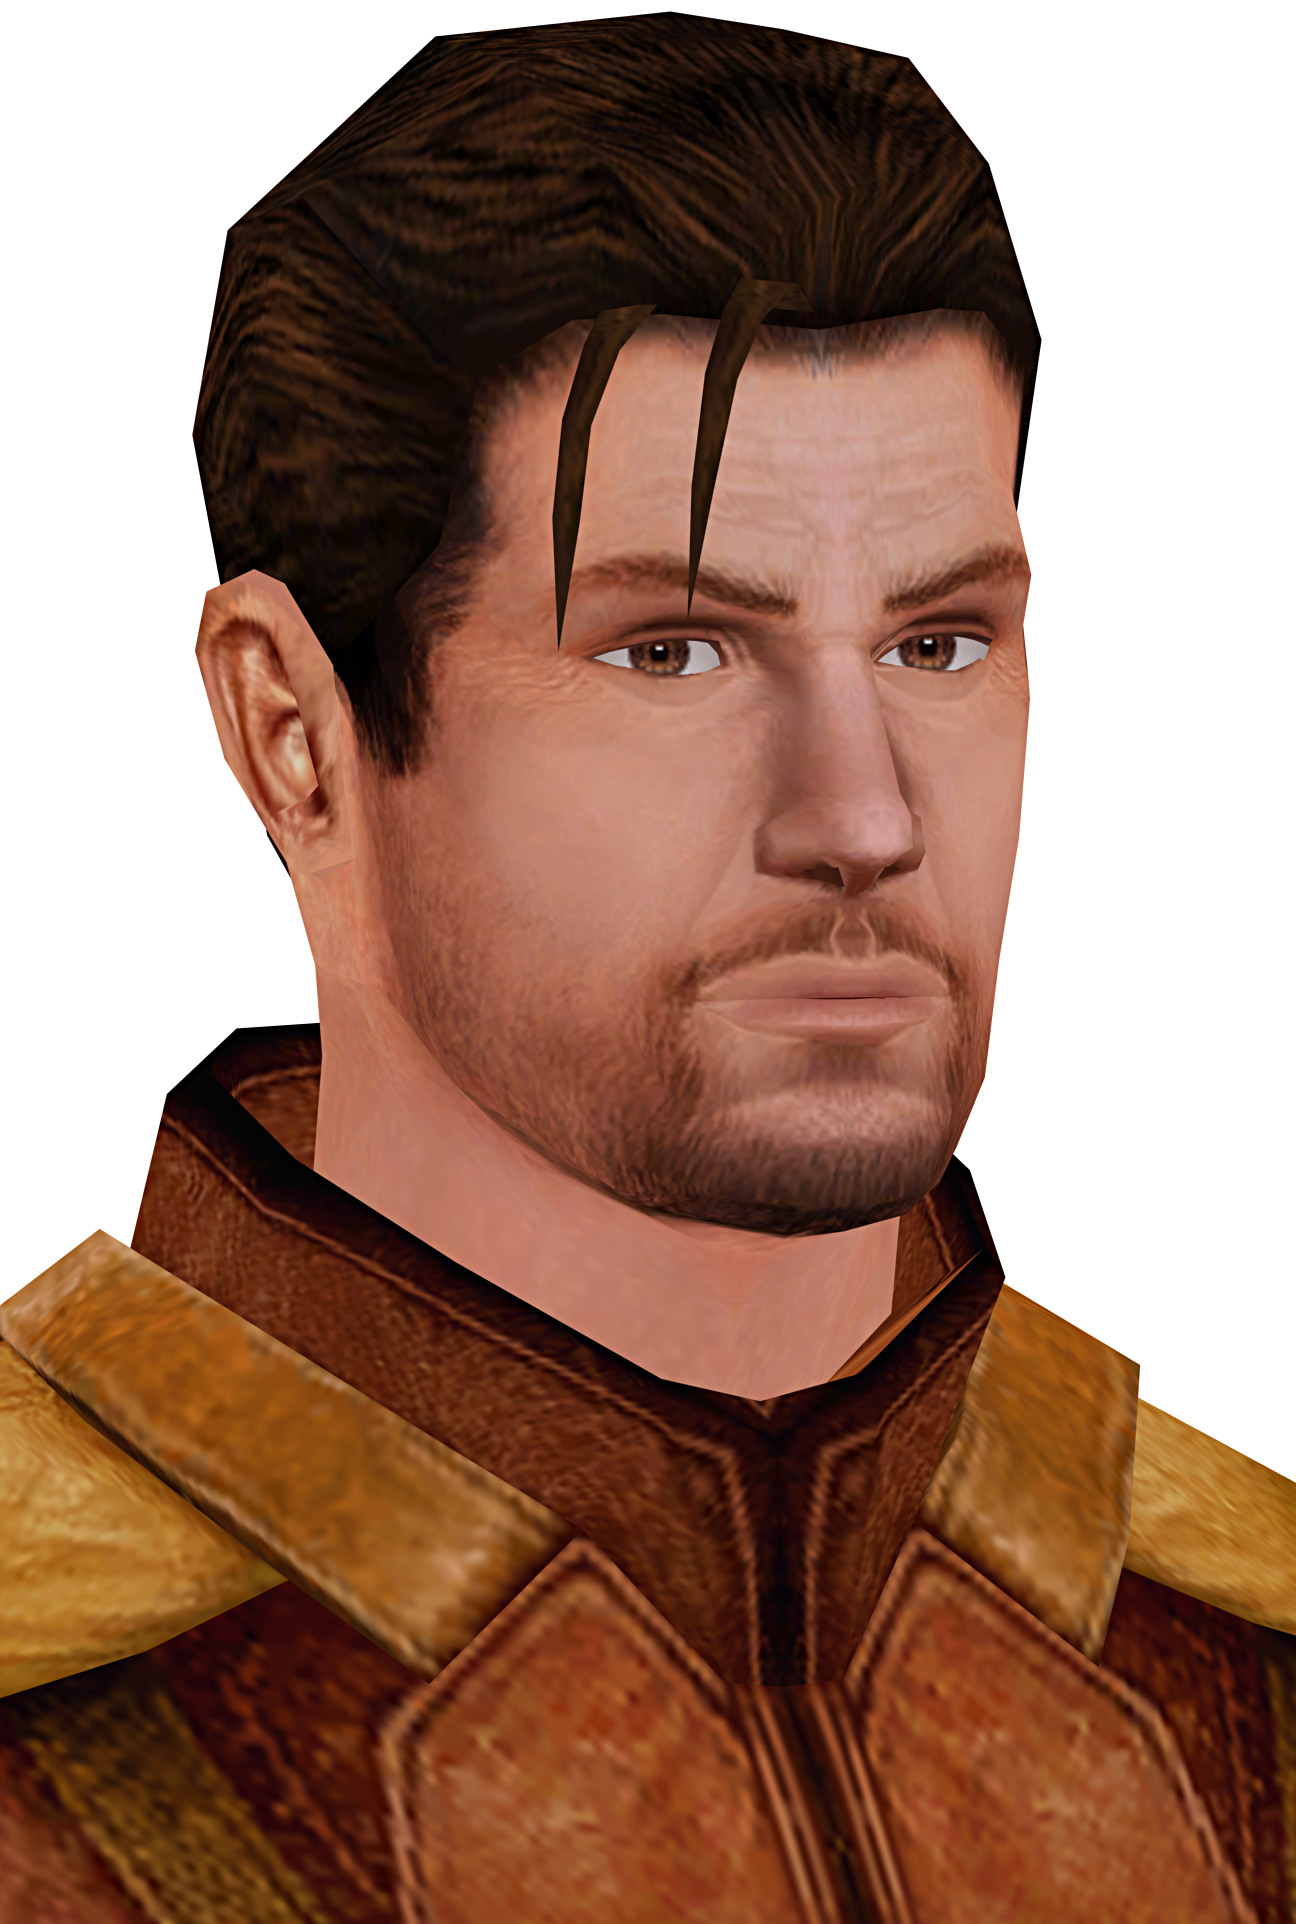 Carth Onasi | Wookieepedia | FANDOM powered by Wikia